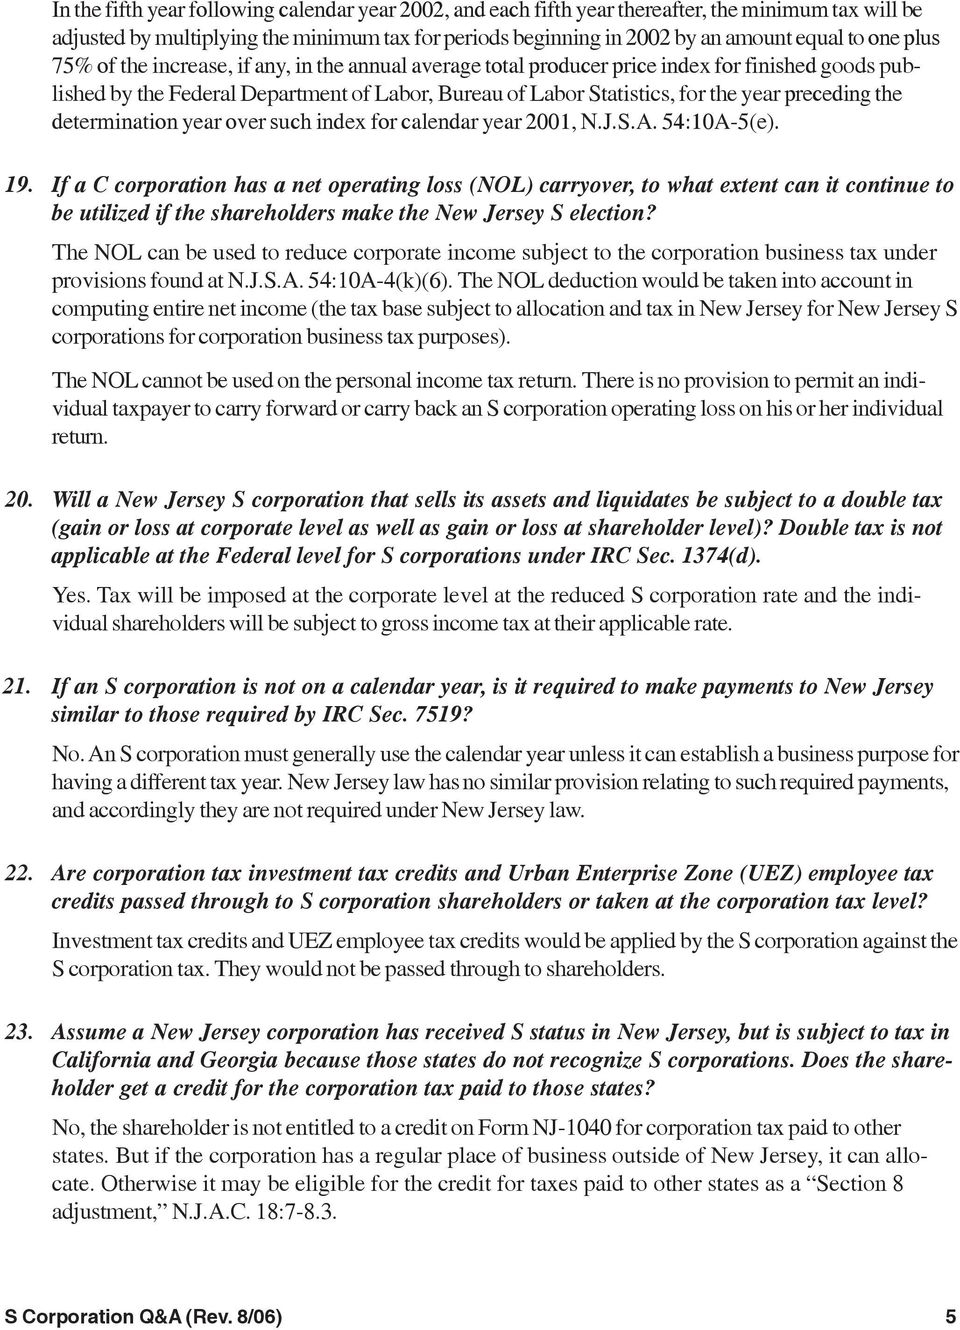 S Corporation Questions & Answers - Pdf Free Download